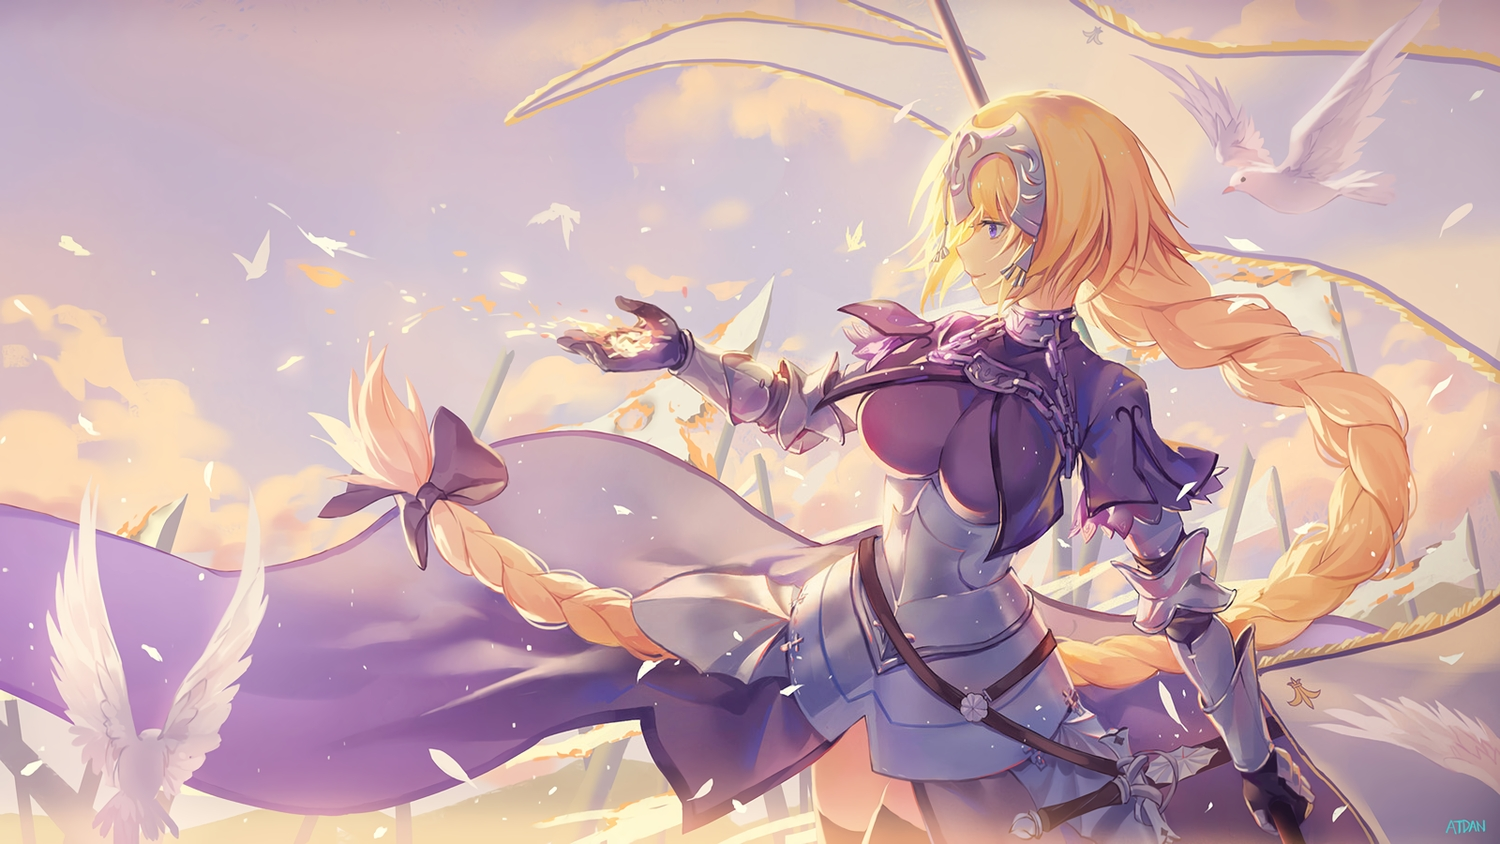 animal atdan bird blonde_hair bow braids breasts chain dress elbow_gloves fate/grand_order fate_(series) gloves headdress jeanne_d'arc_(fate) long_hair ponytail purple_eyes signed thighhighs